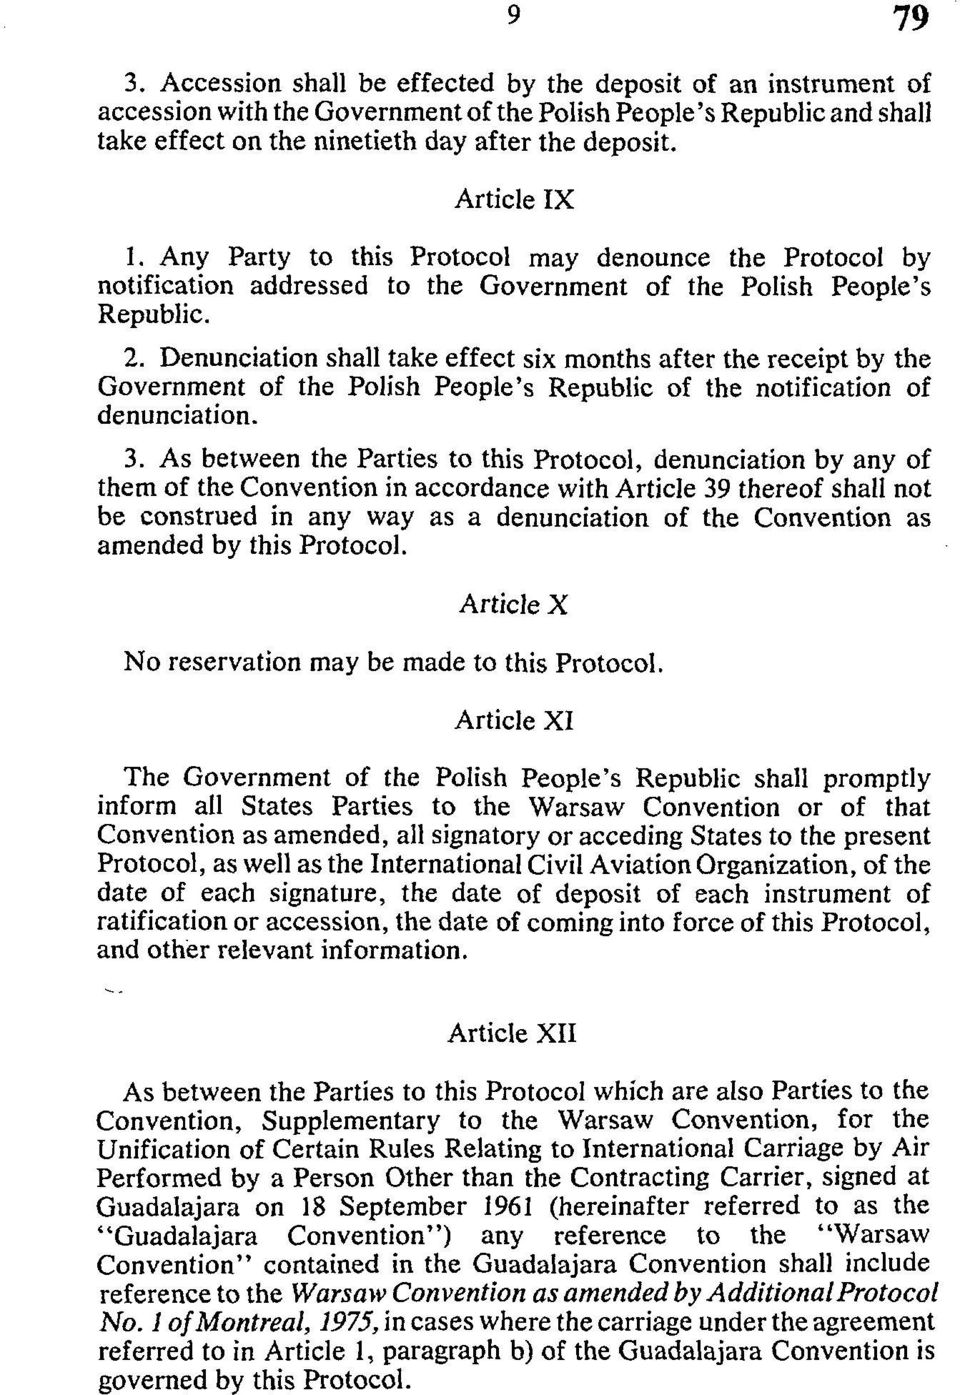 Denunciation shall take effect six months after the receipt by the Government of the Polish People's Republic of the notification of denunciation. 3.